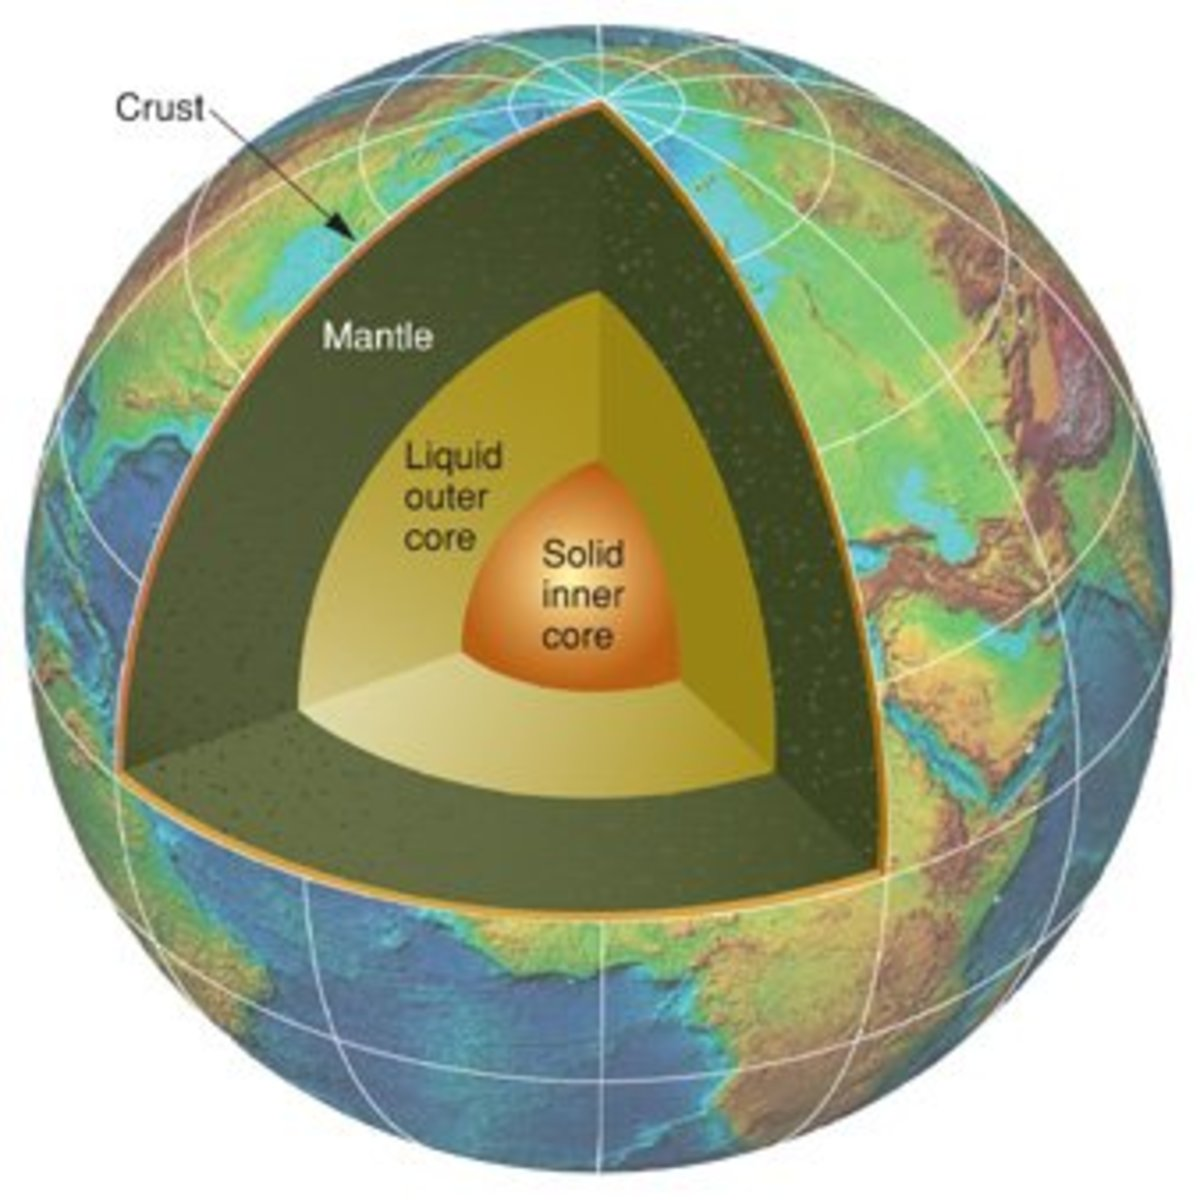 The three layers of Earth are the core, mantle, and crust.